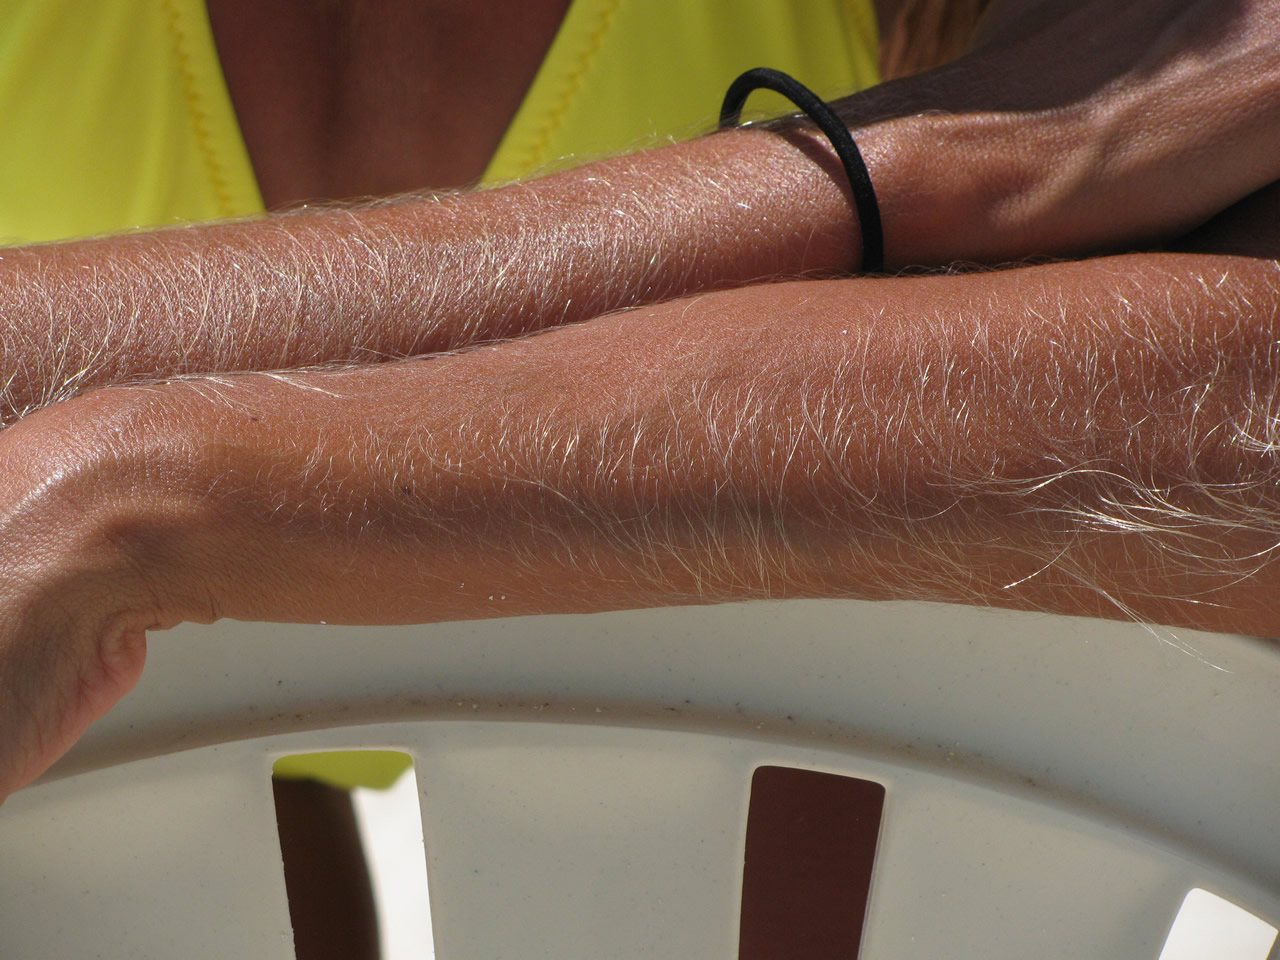 blonde hair on women forearm